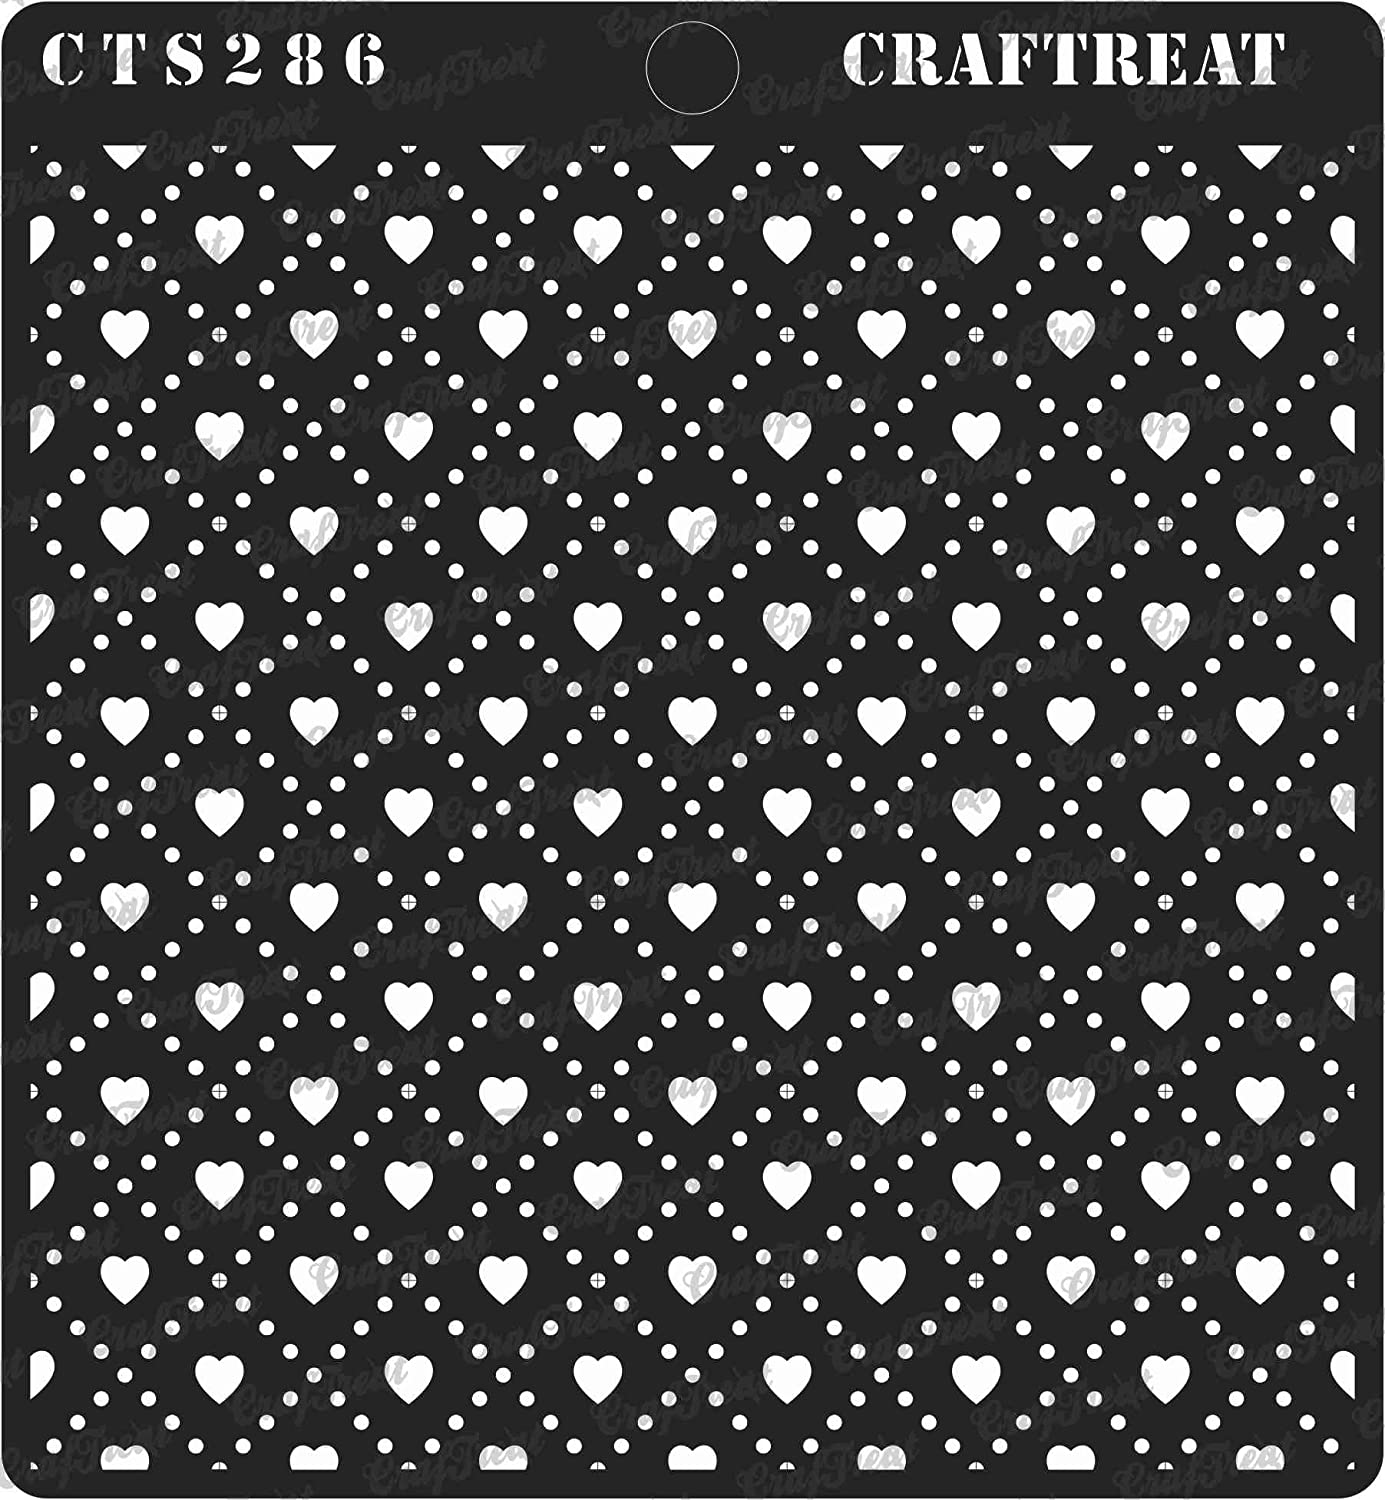 Home Decor Crafting Houndstooth Reusable Painting Template for Journal Tile Notebook Scrapbook and Printing on Paper CrafTreat Stencil Wood 6X6 Wall Floor Fabric DIY Albums